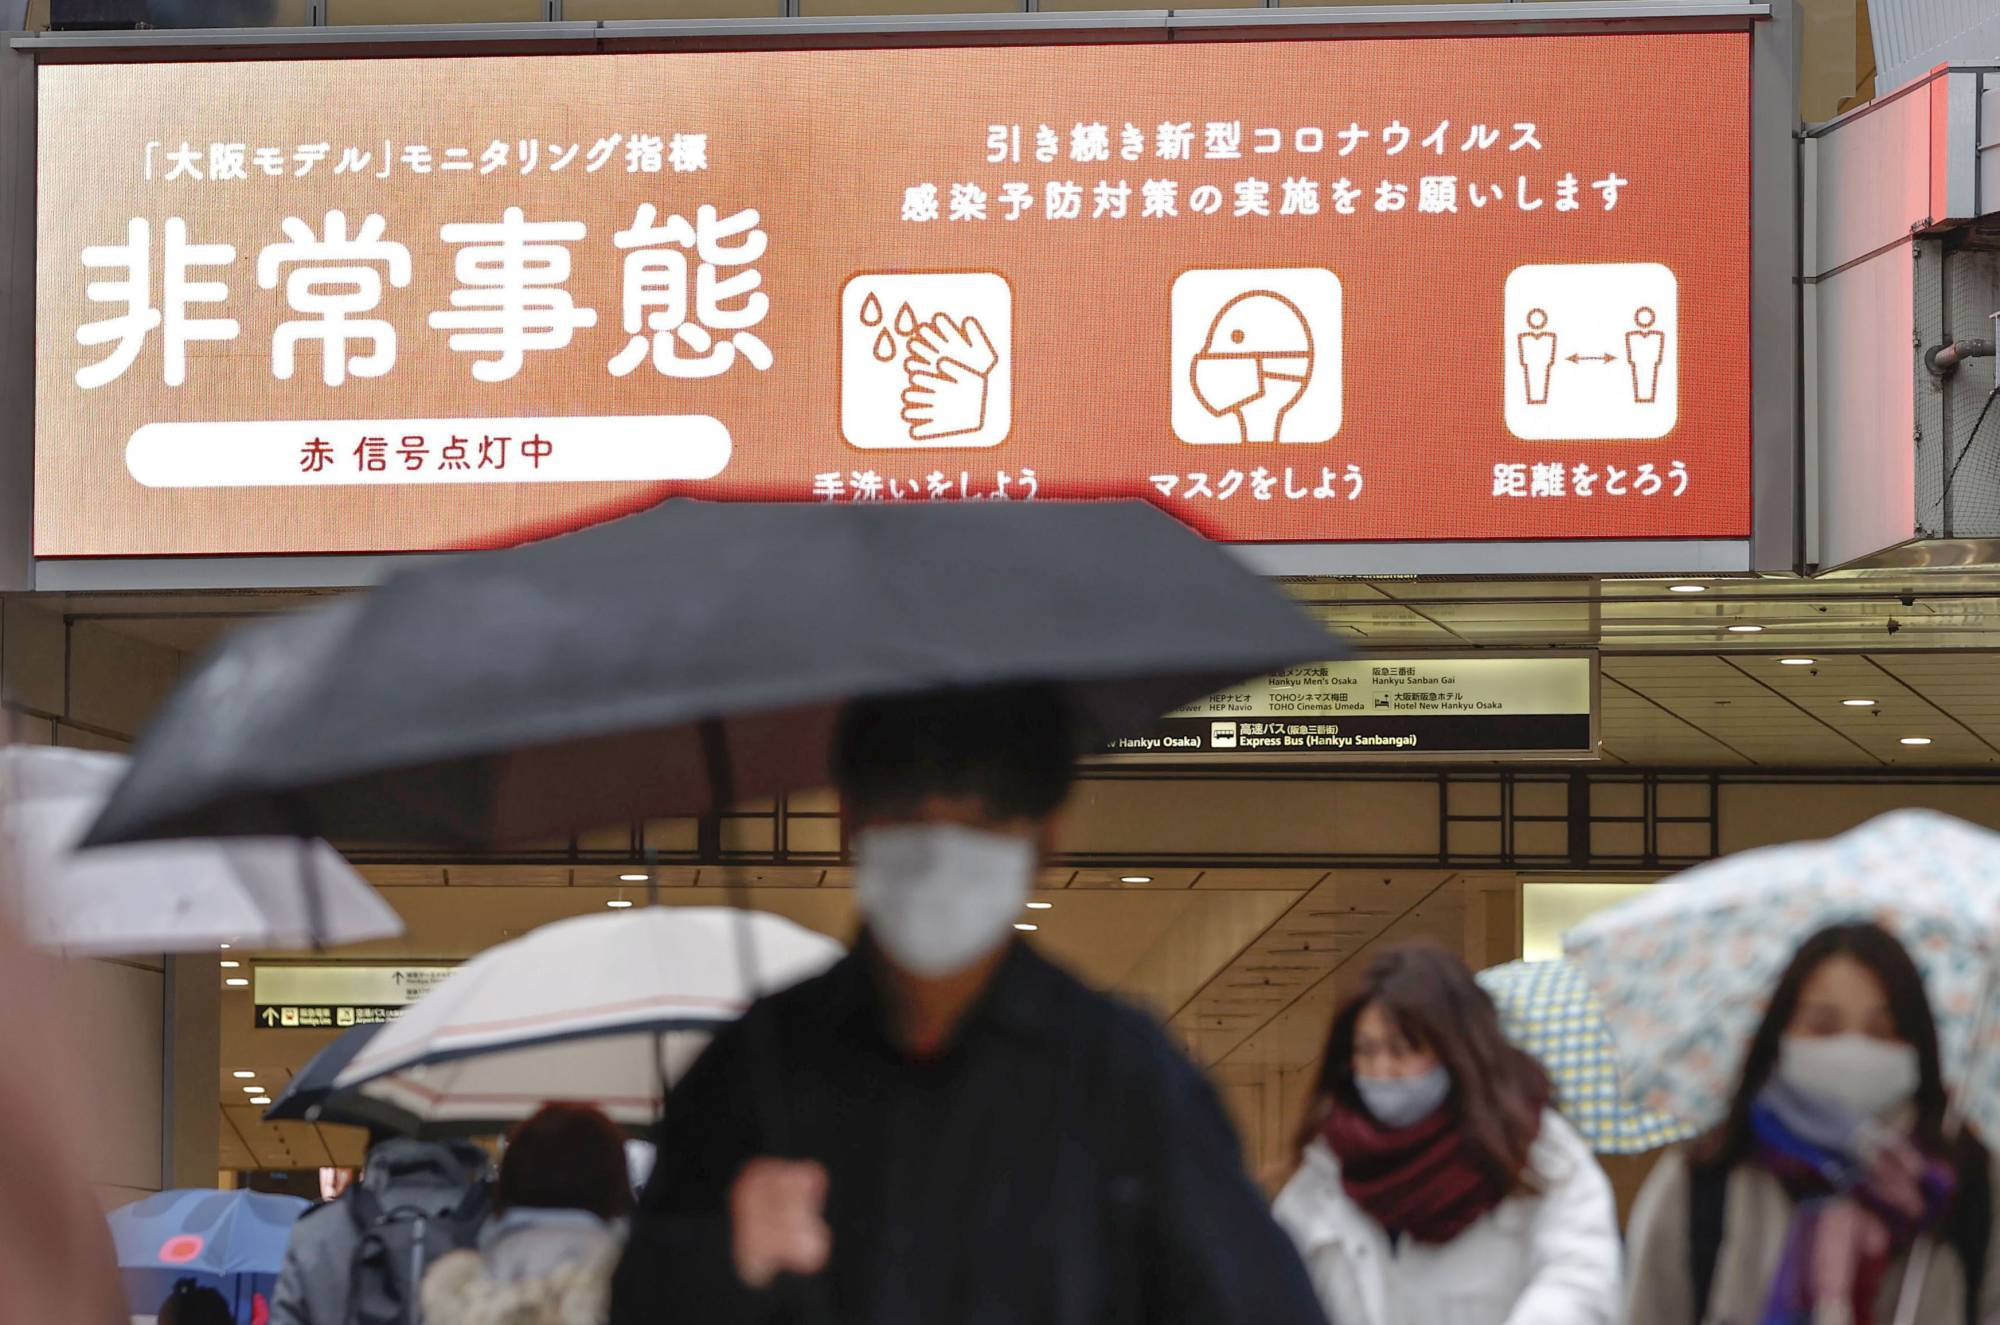 Osaka, Hyogo, and Kyoto to Further State of Emergency Period